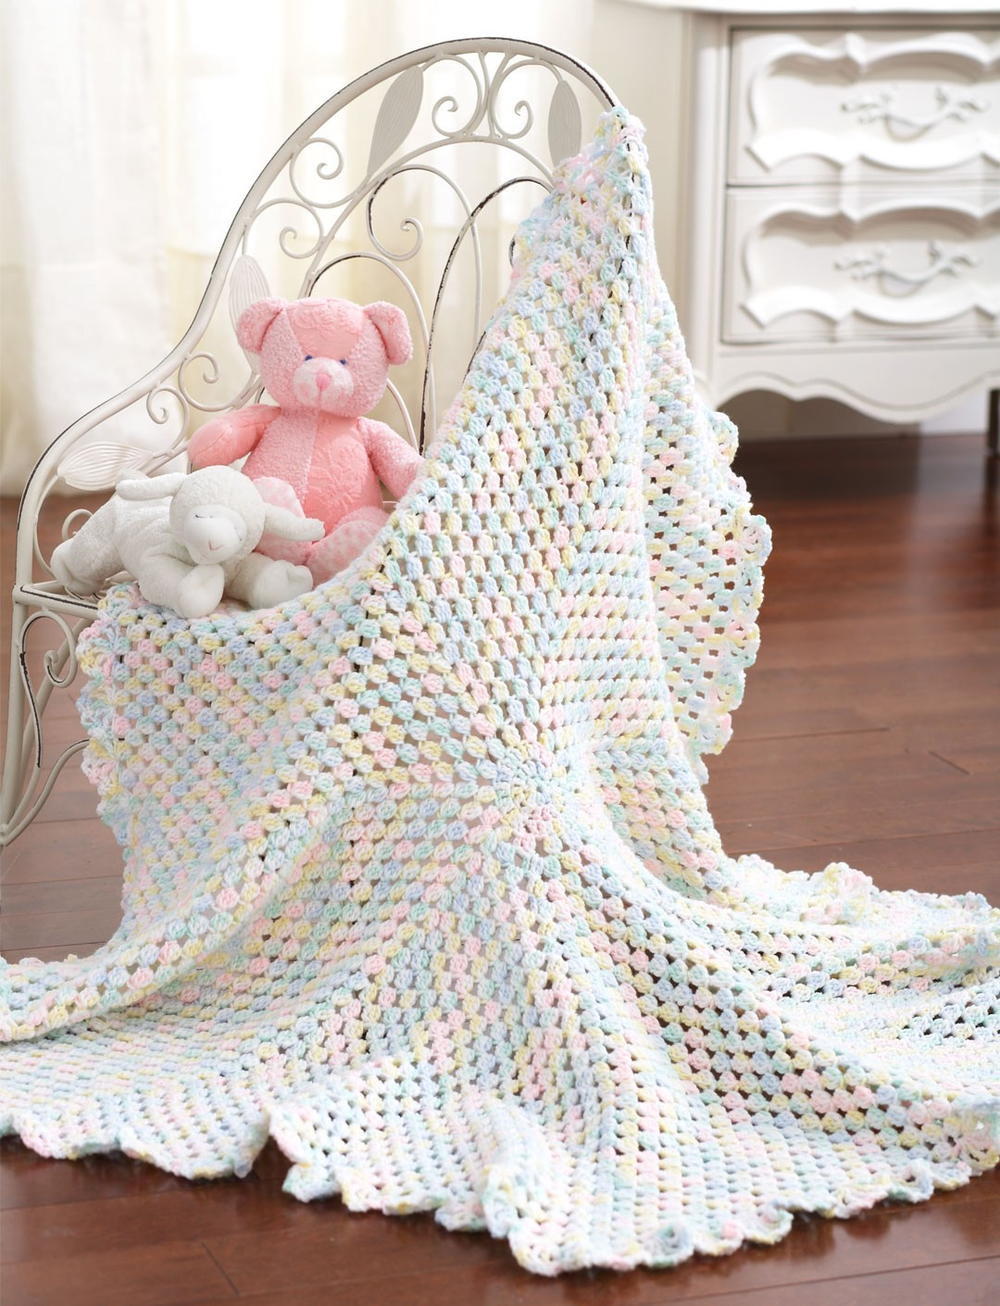 Free Crochet Afghan Patterns Inspirational Marshmallow Baby Blanket Of Fresh 44 Models Free Crochet Afghan Patterns